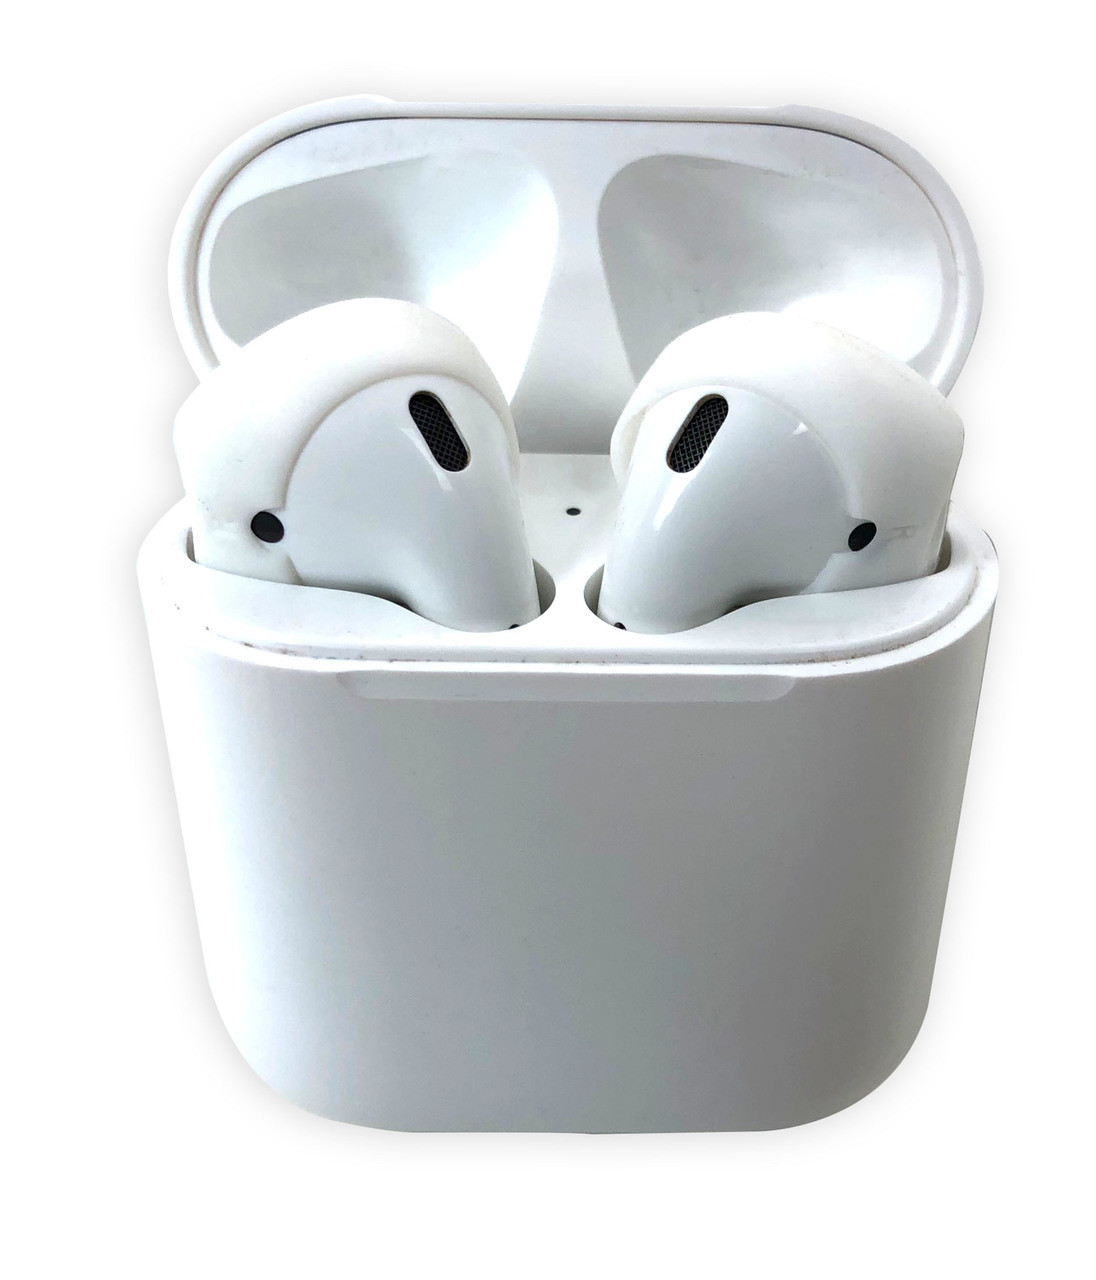 AERZ - AirPods & Apple Earbuds Skins | FOCUS (White)  * AERZ is a simple comfortable AirPod and Apple Earbud 2.0 solution that improves the sound quality and comfort of your Apple AirPods and Apple Earbud 2.0     * Soft high quality silicone cover skins improve the comfort of Apple AirPods and Apple Earbuds 2.0 allowing you to wear your AirPods or Earbuds for hours on end without discomfort     * AERZ dramatically improves the audio quality of Apple AirPods and Apple Earbuds 2.0 by air sealing AirPods and Earbuds to prevent the escape of sound waves; thereby dramatically improving audio quality * Ultra-thin but Durable: AERZ Don't make your AirPods or earbuds too big for your ear canals.  It's the soft silicone surface that seals the audio quality in and makes your AirPods and Earbuds ultra comfortable